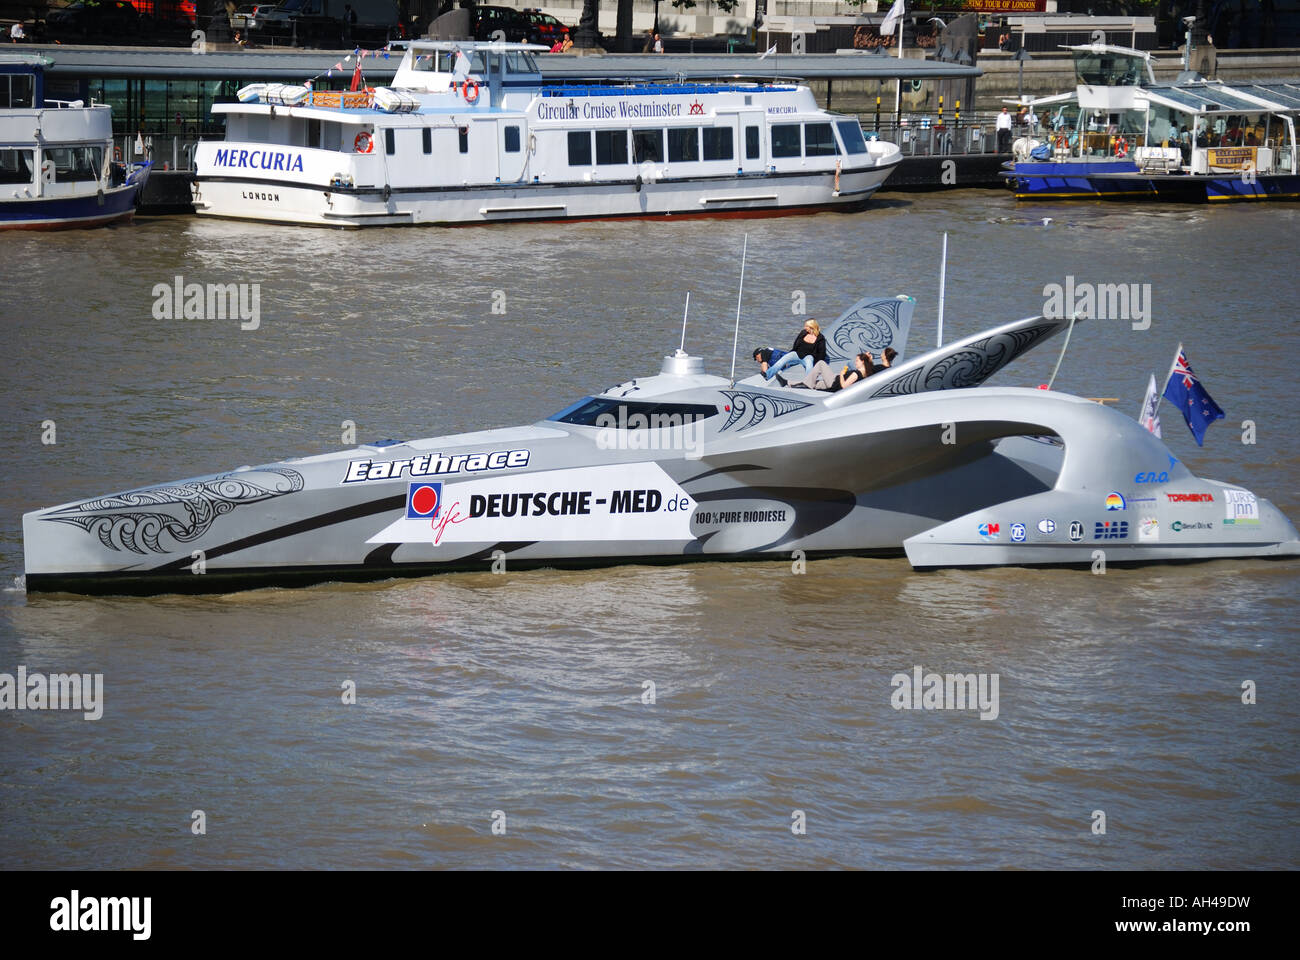 Futuristic powerboat 'Earthrace' cruising on River Thames, London, England, United Kingdom - Stock Image